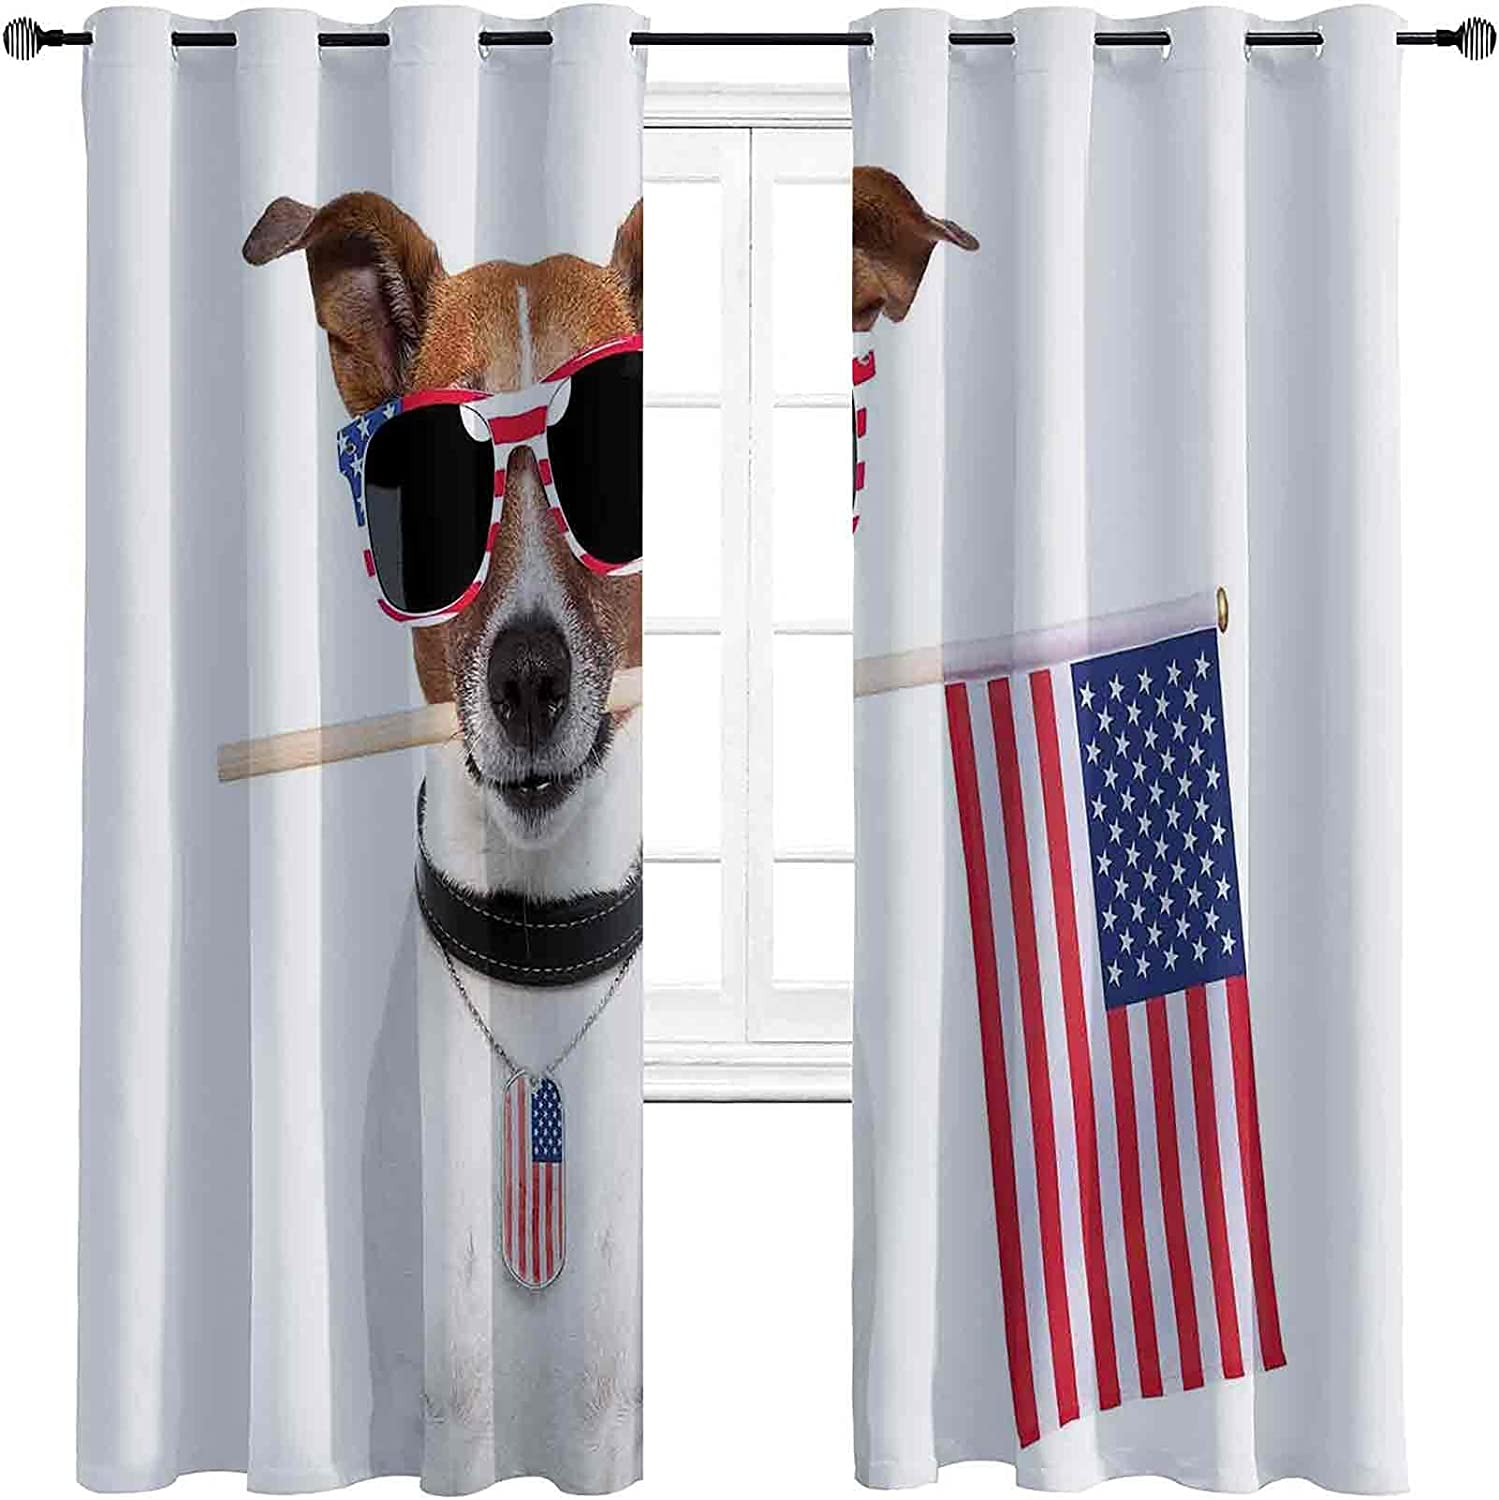 Cheap SALE Start Dog Lover Low price Decor Shading Insulated with USA American Curtain